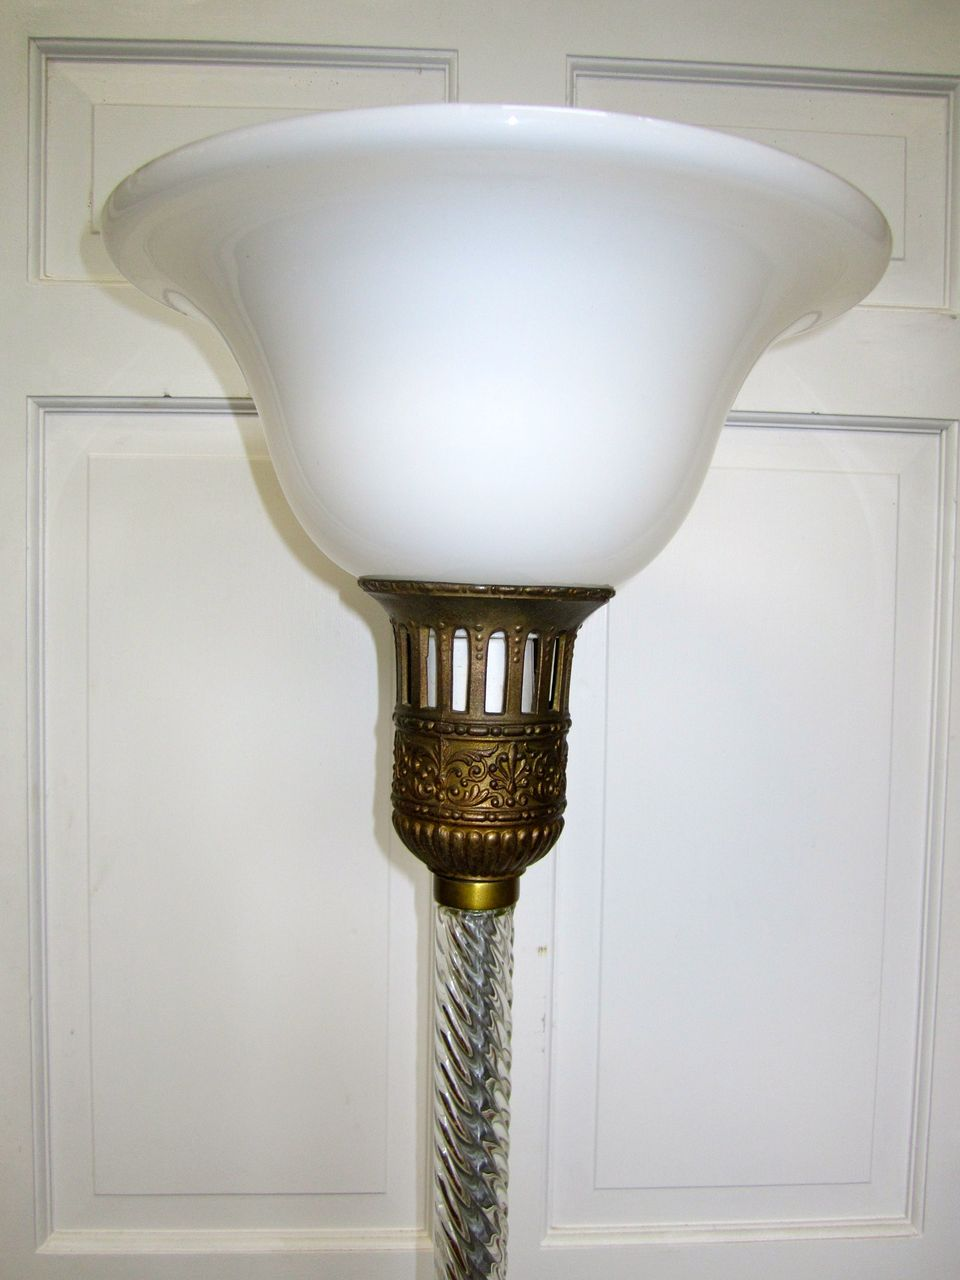 Frankart Signed Floor Lamp Light from revivalhome on Ruby Lane